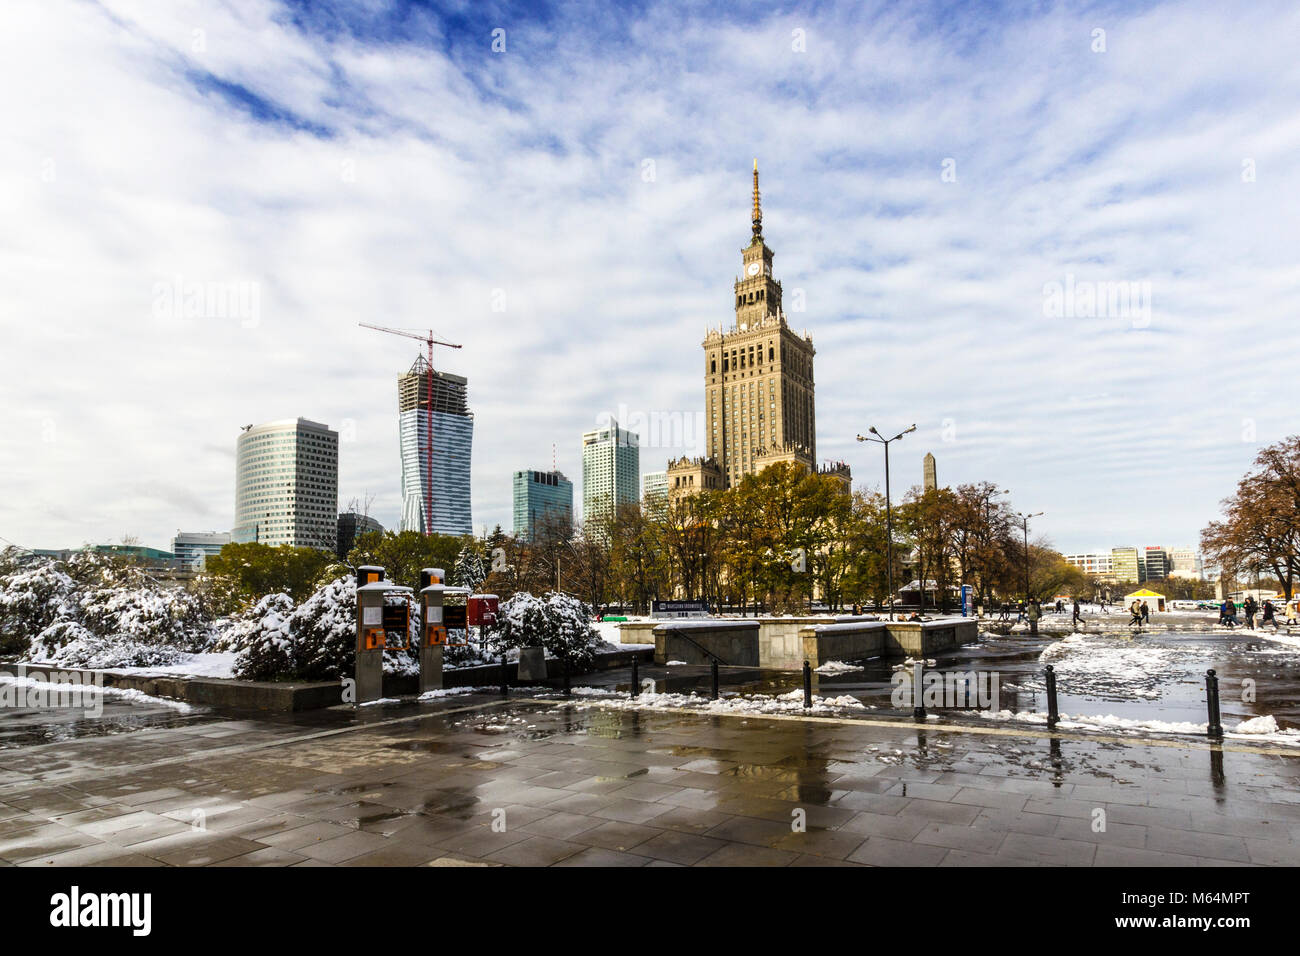 Palace of Culture and Science is located in the center of Warsaw - Stock Image